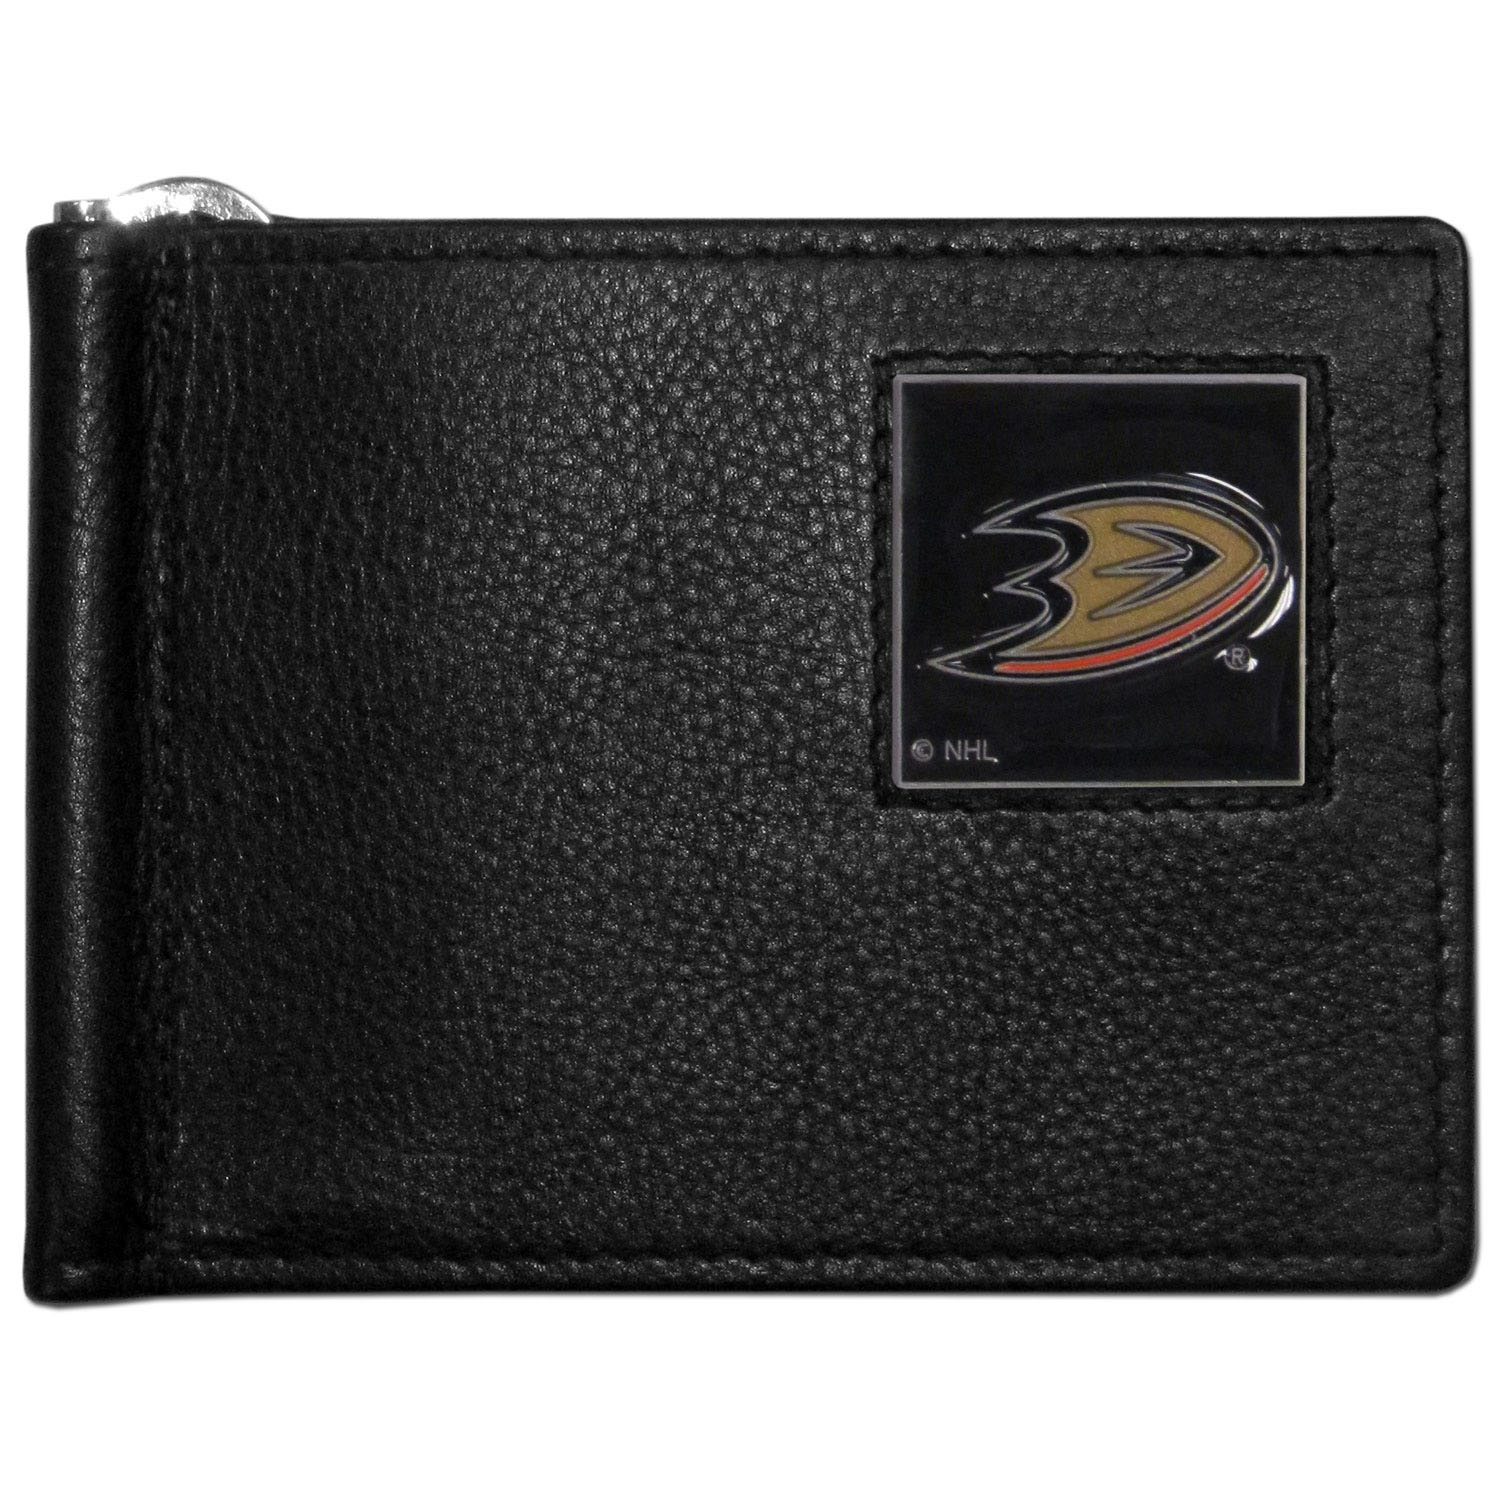 Anaheim Ducks® Leather Bill Clip Wallet - This cool new style wallet features an inner, metal bill clip that lips up for easy access. The super slim wallet holds tons of stuff with ample pockets, credit card slots & windowed ID slot. The wallet is made of genuine fine grain leather and it finished with a metal Anaheim Ducks® emblem. The wallet is shipped in gift box packaging.